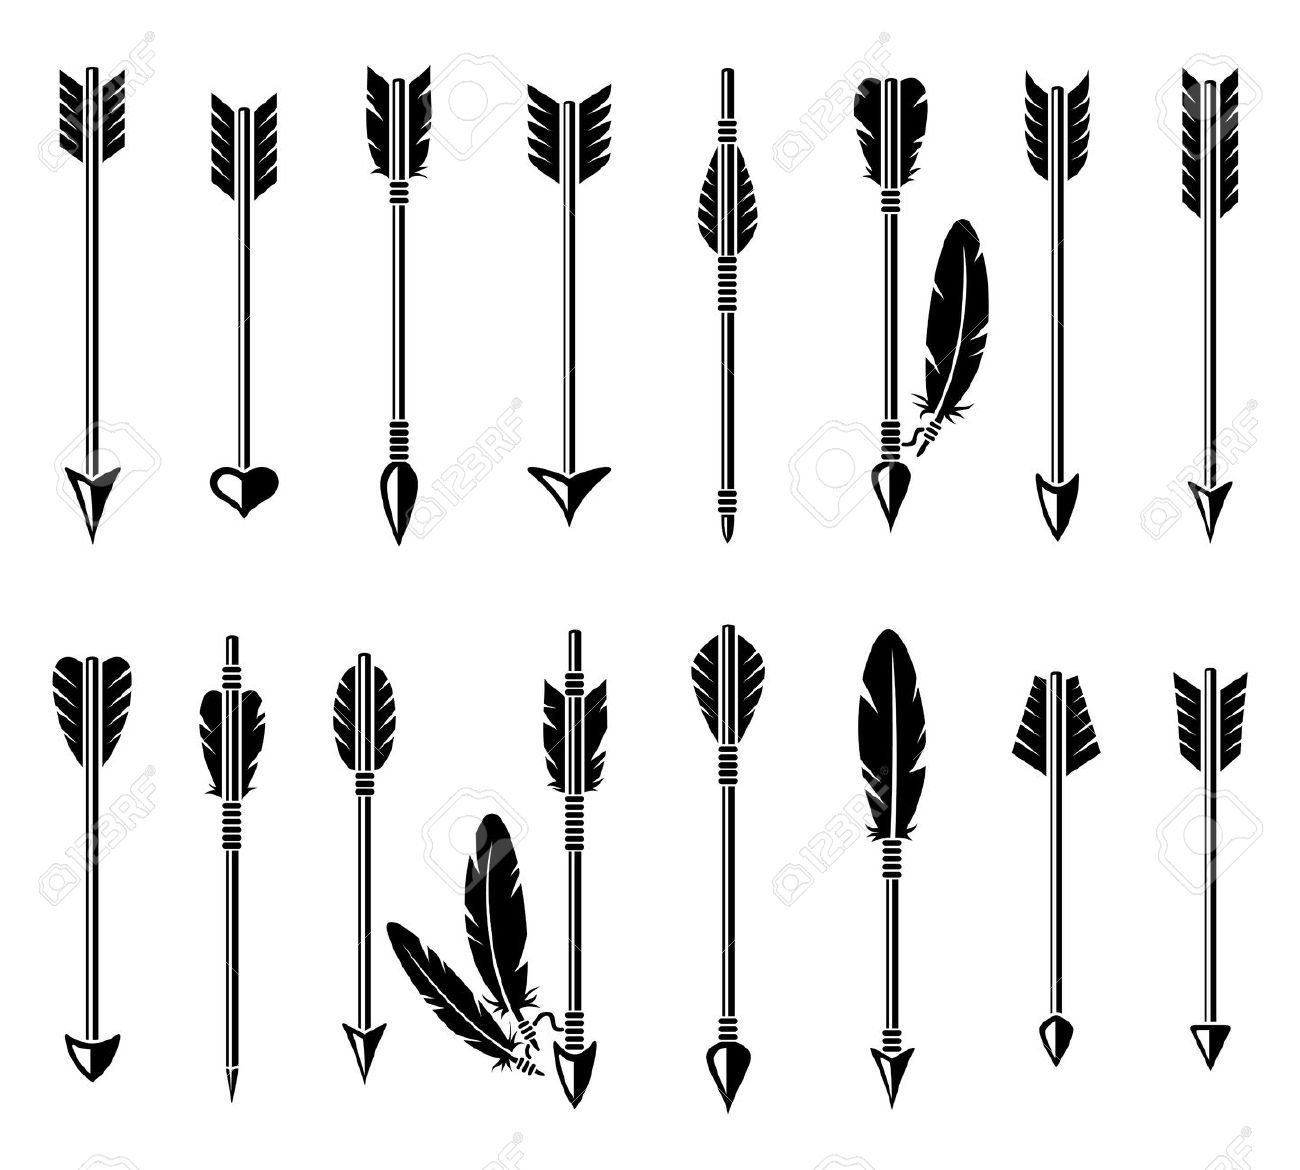 1,182 Medieval Bow And Arrow Stock Vector Illustration And ...